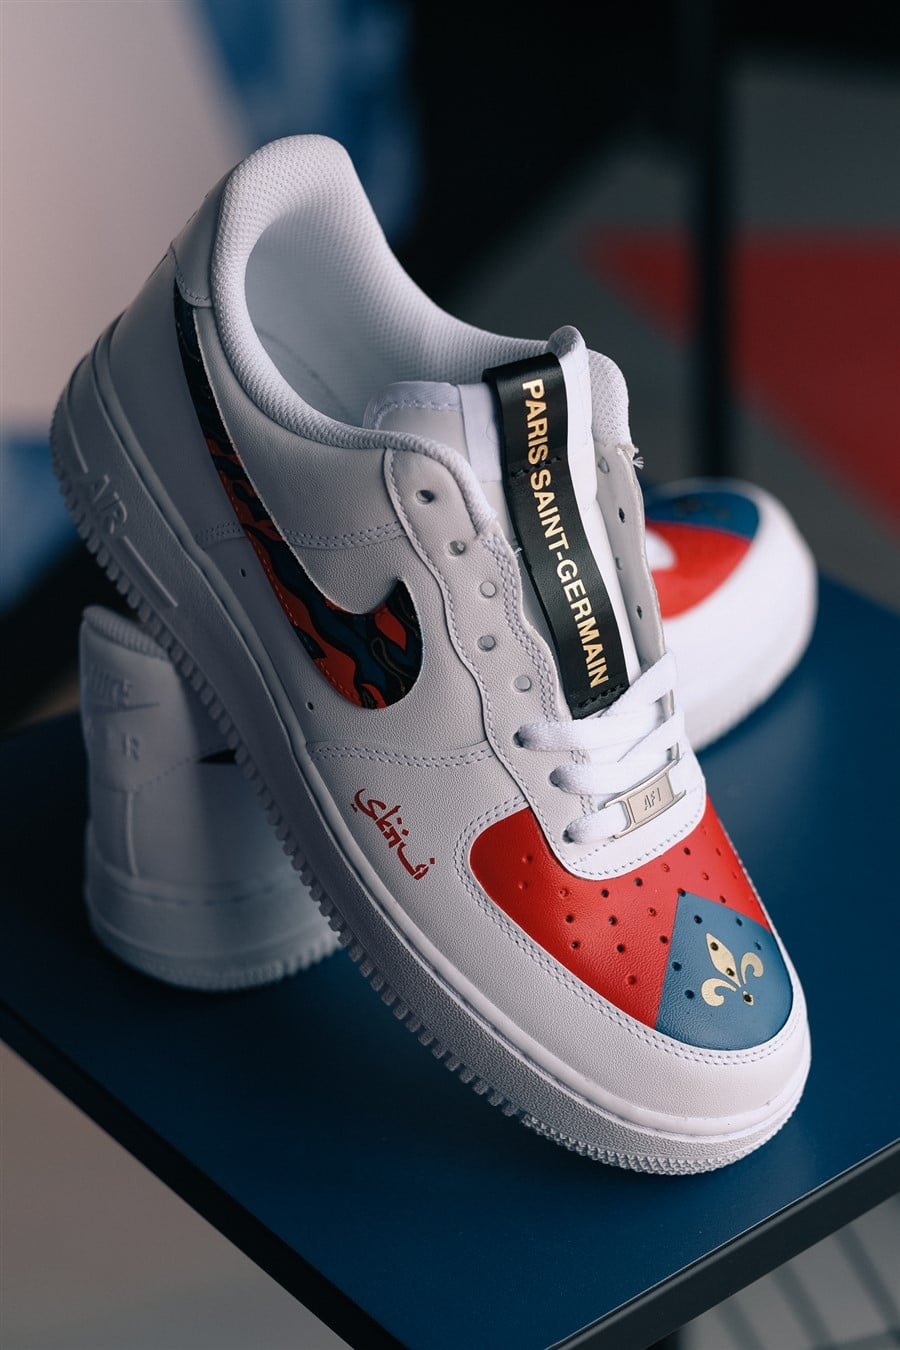 Custom Air Force Ones by PSG